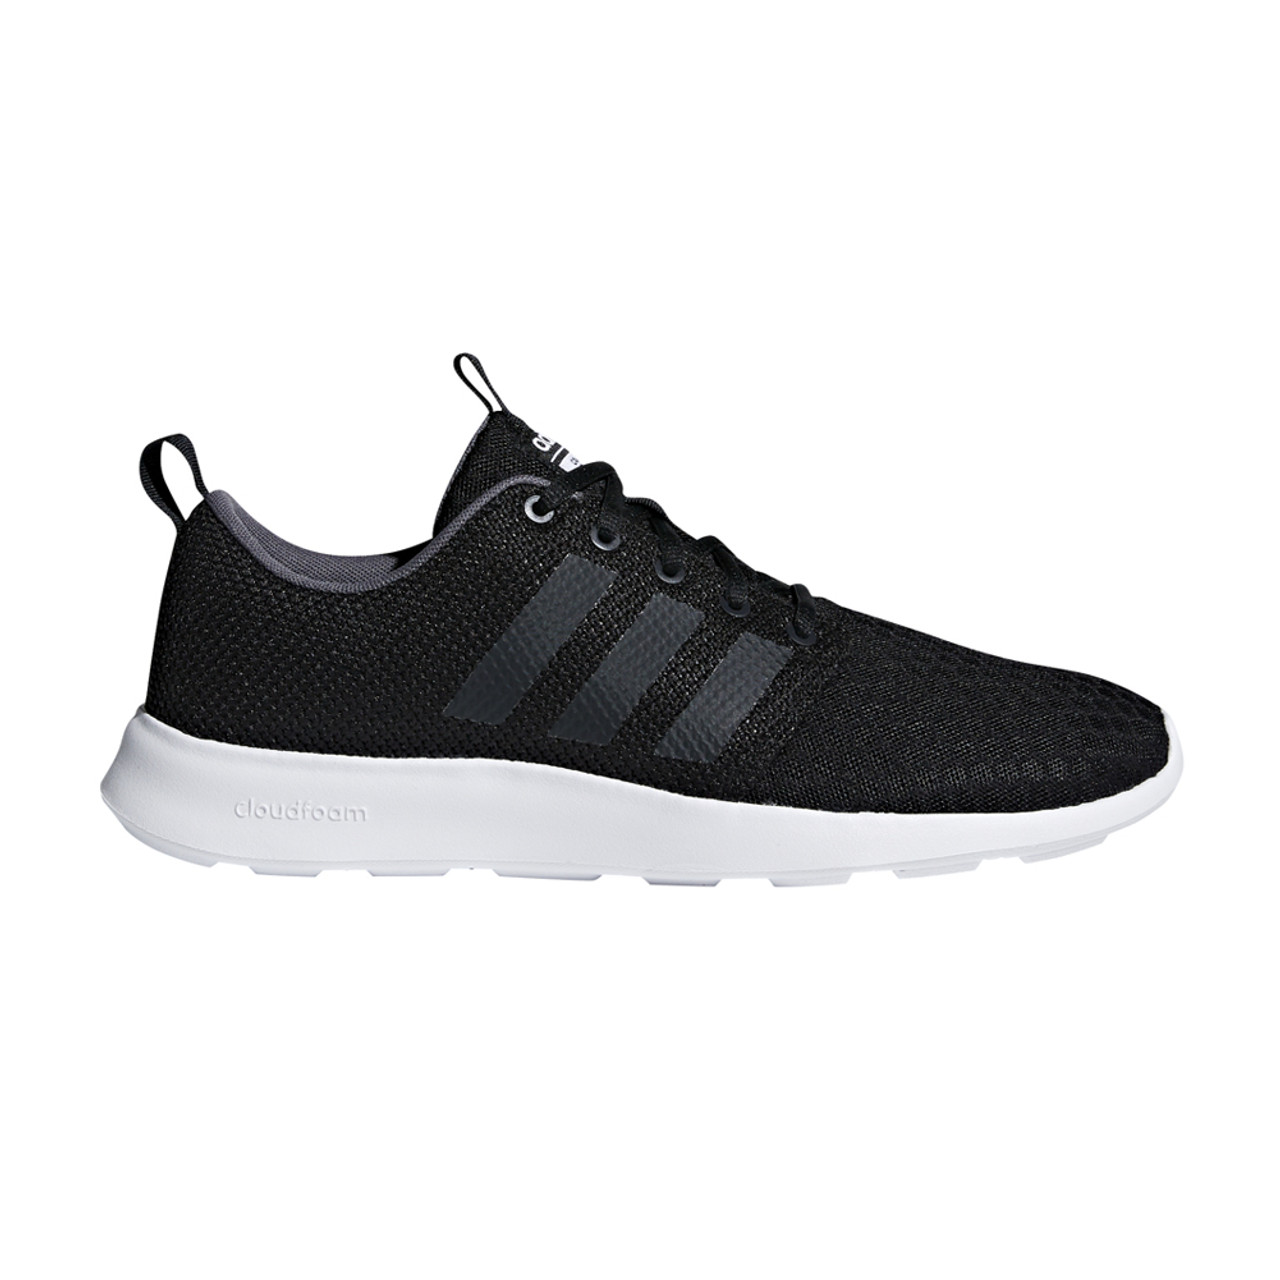 bf972be2e Adidas Men s Cloudfoam Swift Racer Sneaker Black Carbon - Shop now    Shoolu.com